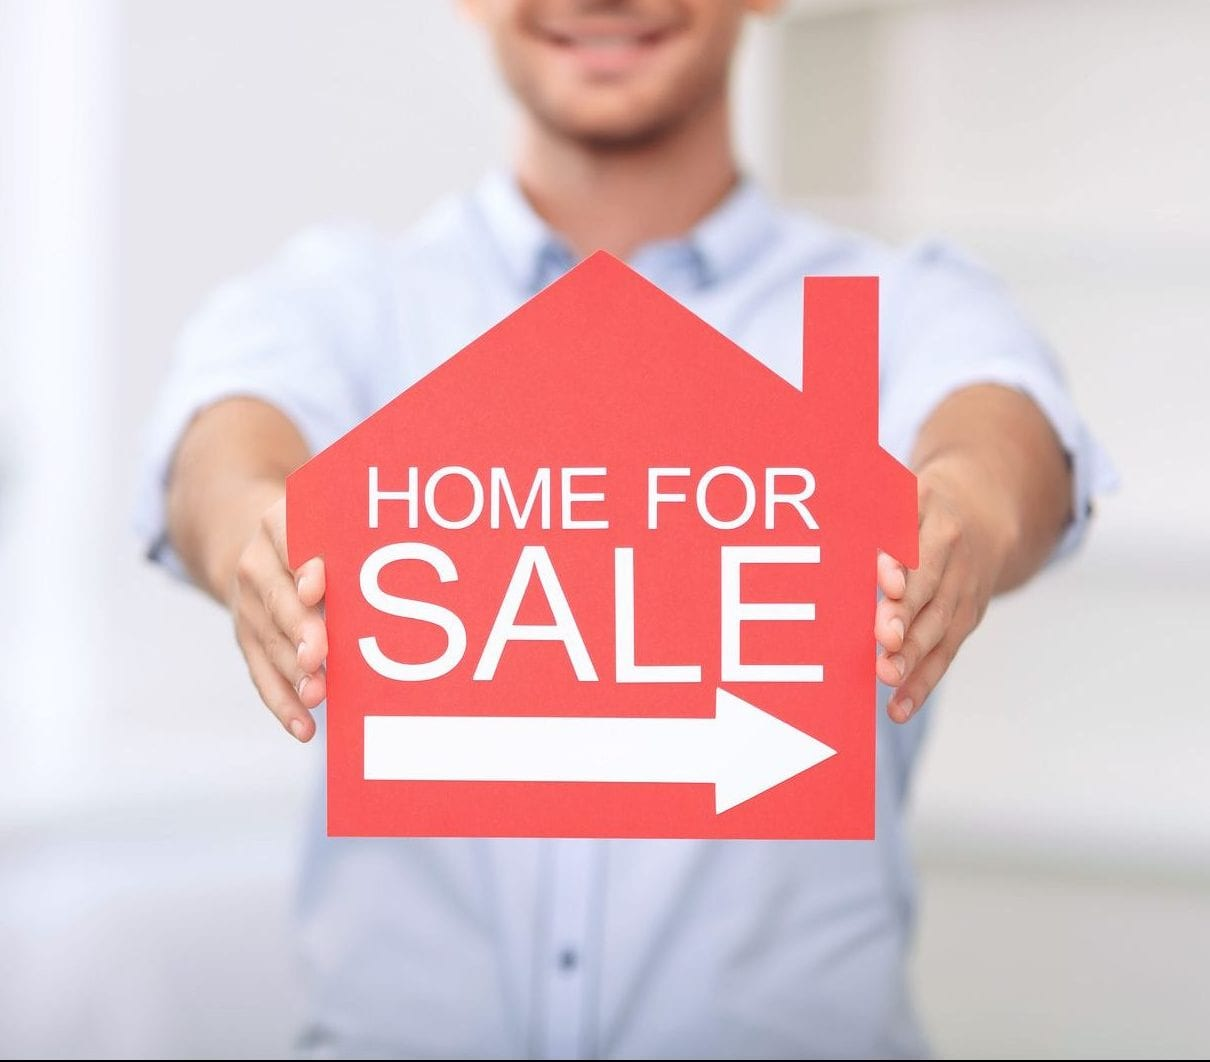 Best Way Rentals: What's The Best Way To Sell Your Rental Home For Sale